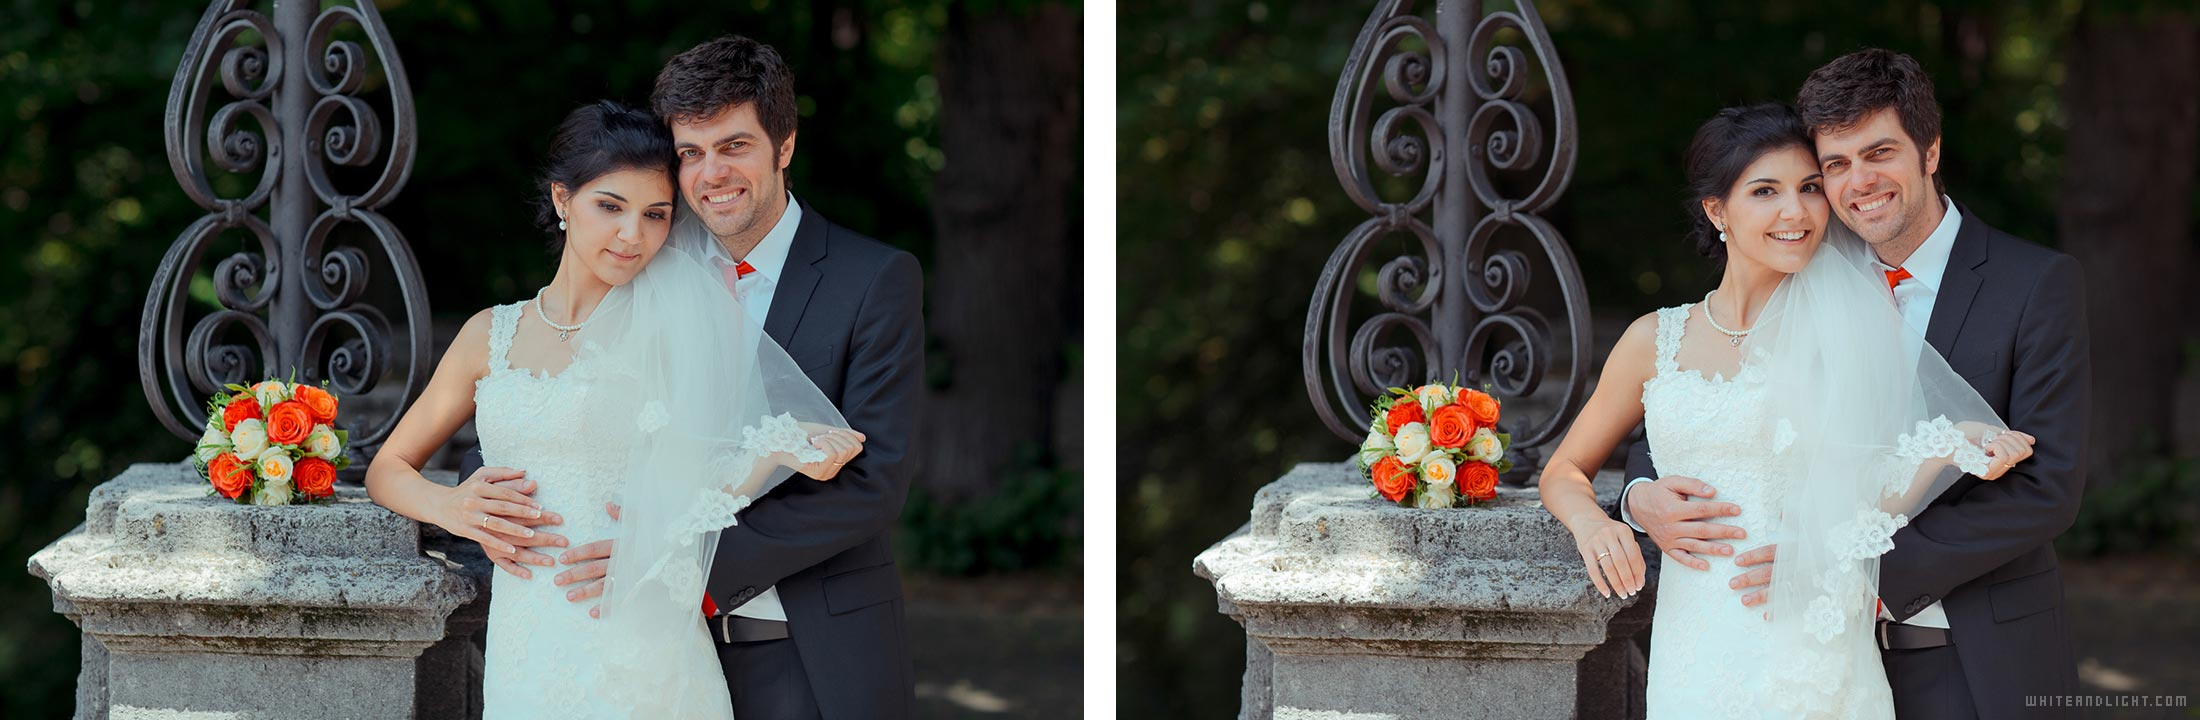 wedding photographer for 2 hours